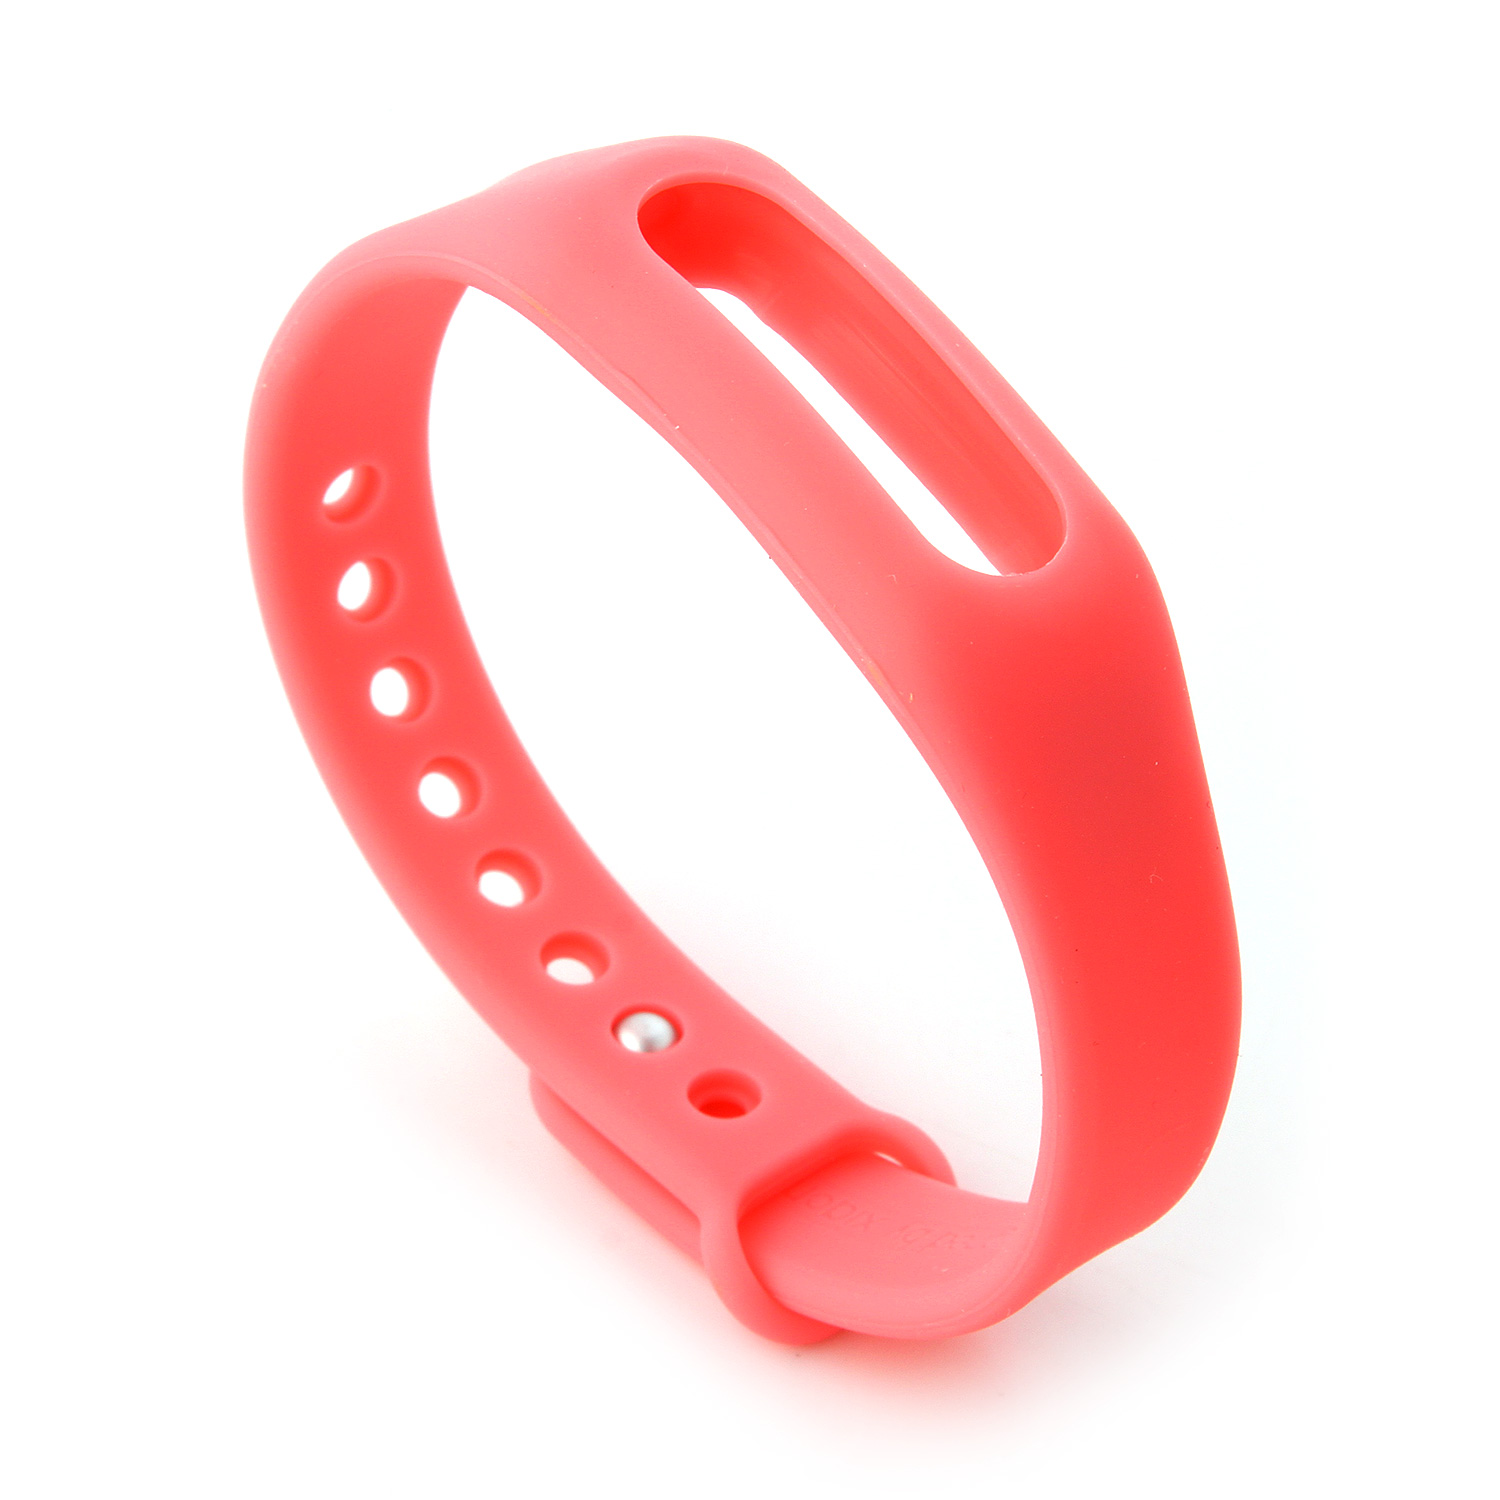 Replacement Wrist Strap Wearable Wrist Band for XIAOMI MI Band Bluetooth Bracelet- Pink